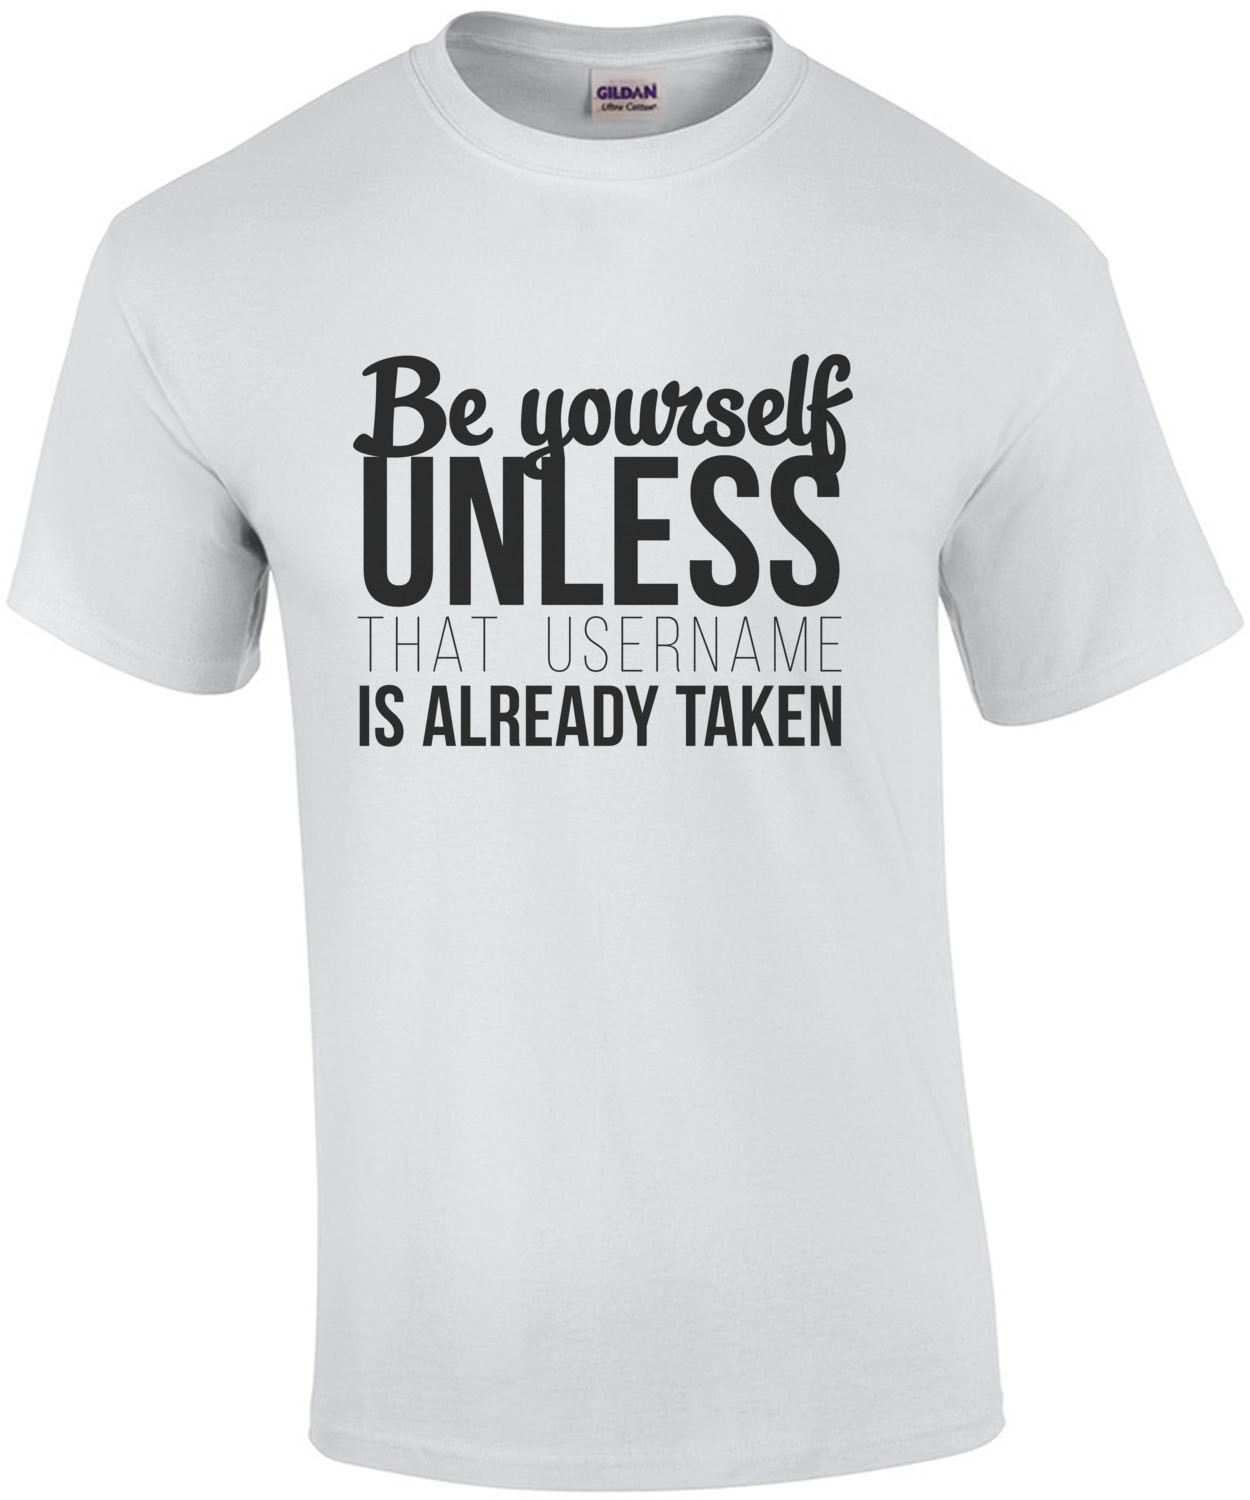 Be yourself unless that username is already taken - funny t-shirt